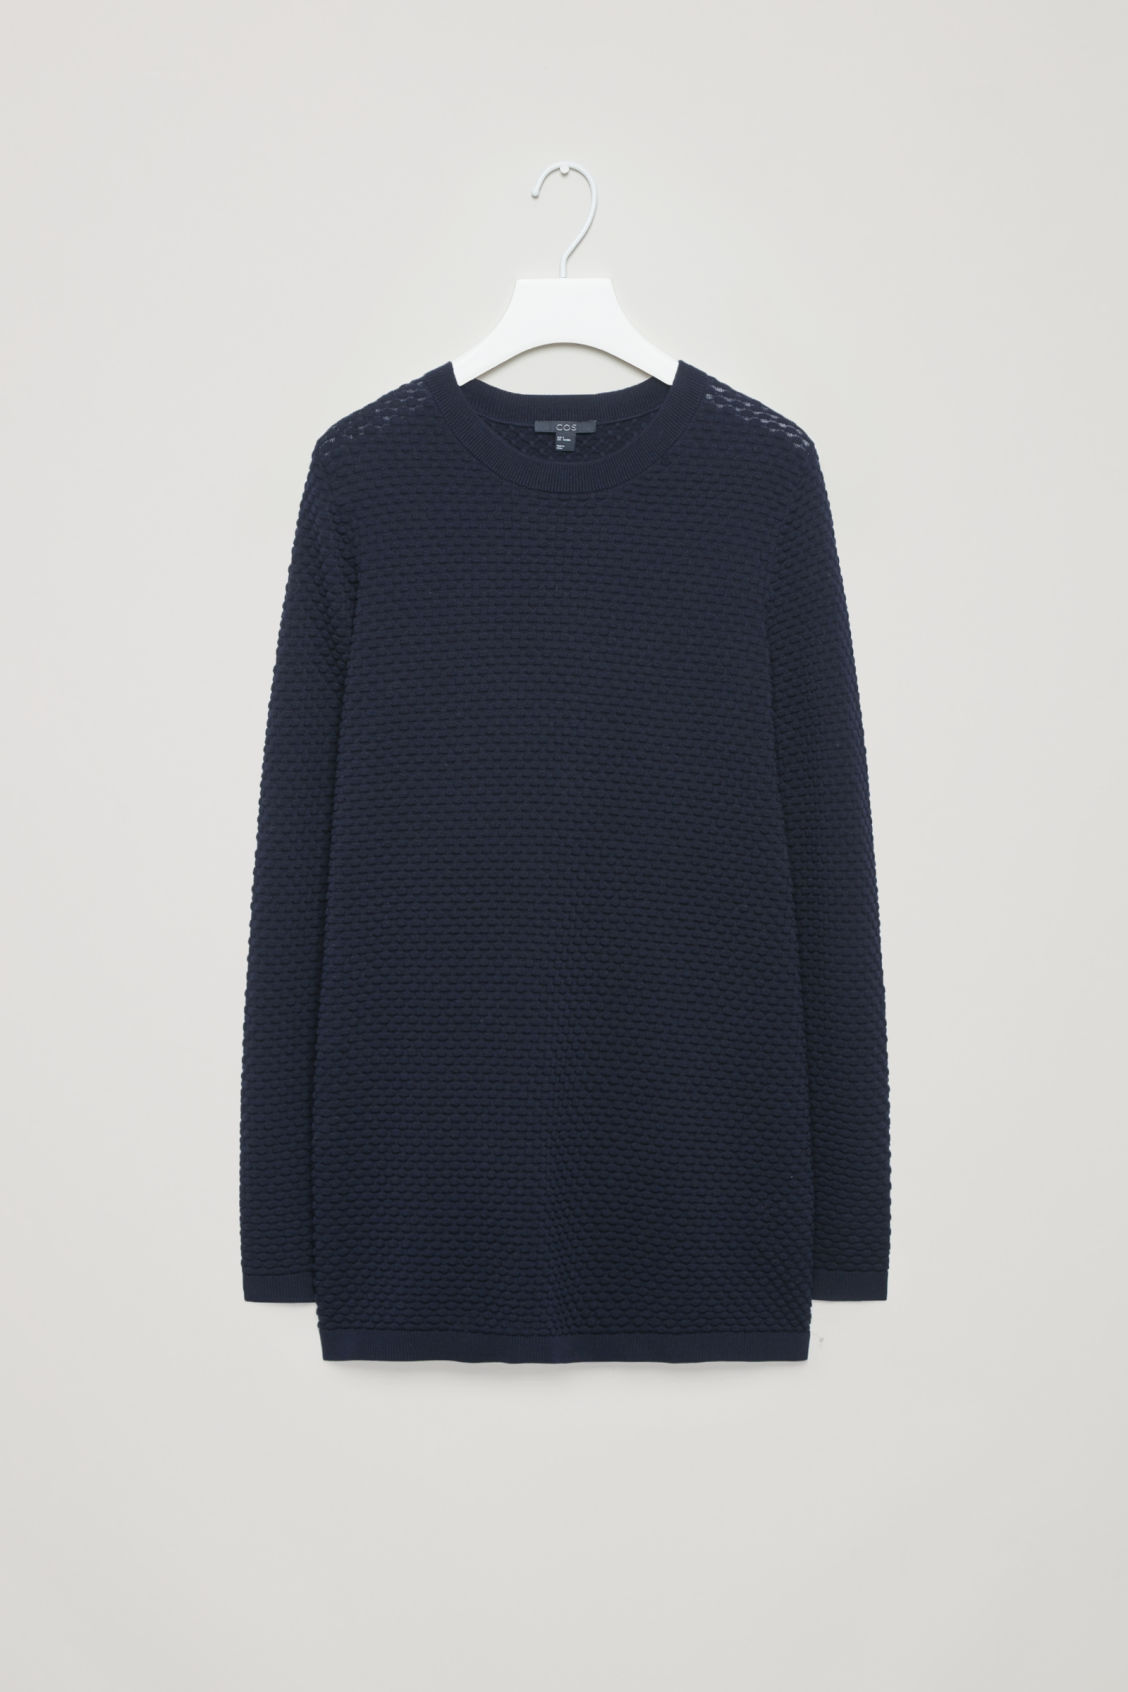 6f92e853bfb4 TEXTURED COTTON JUMPER - Indigo - Knitted tops - COS